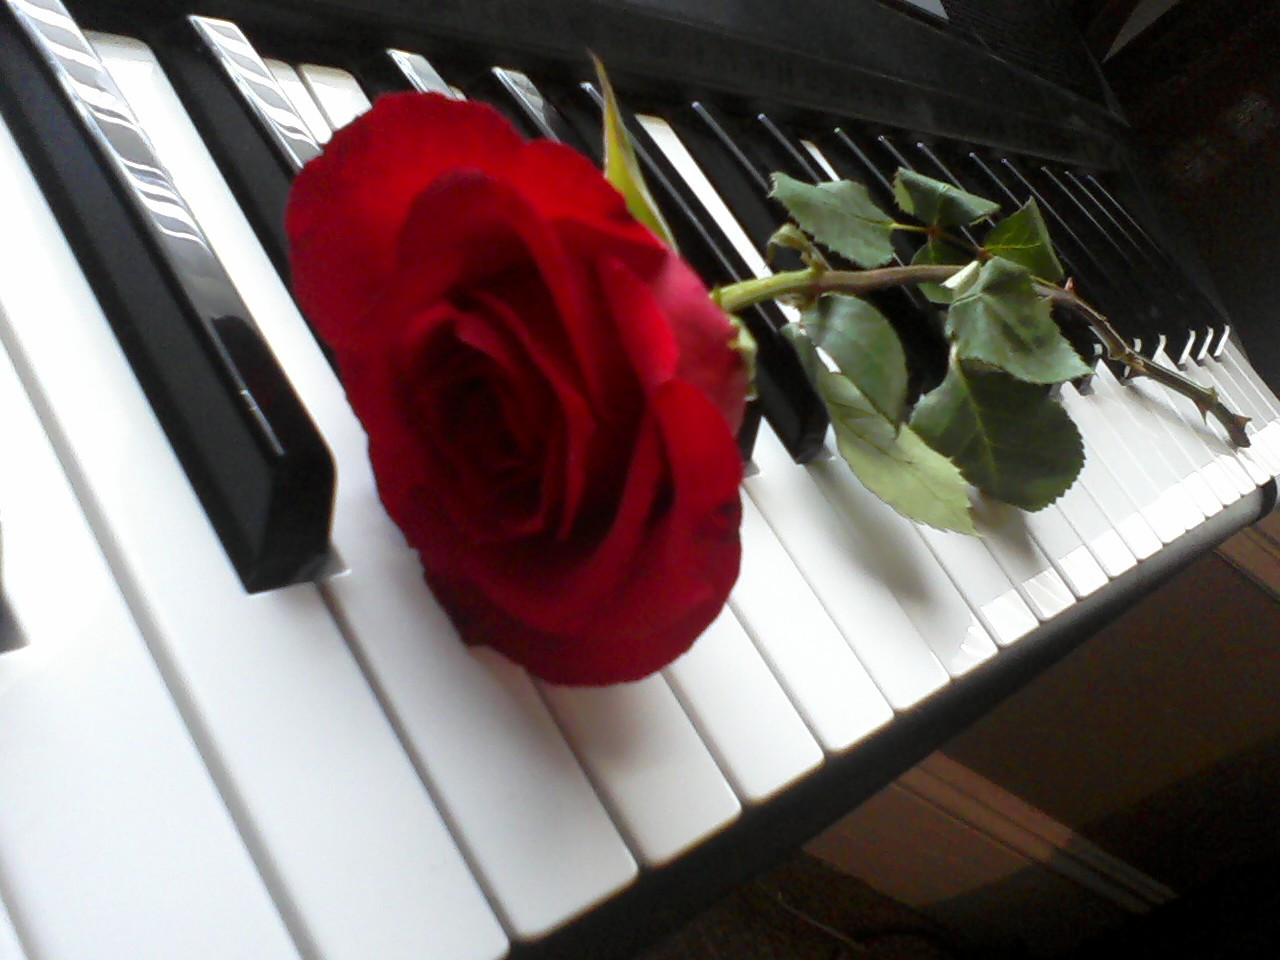 piano_rose_by_charismaticchaos93-d31g36a